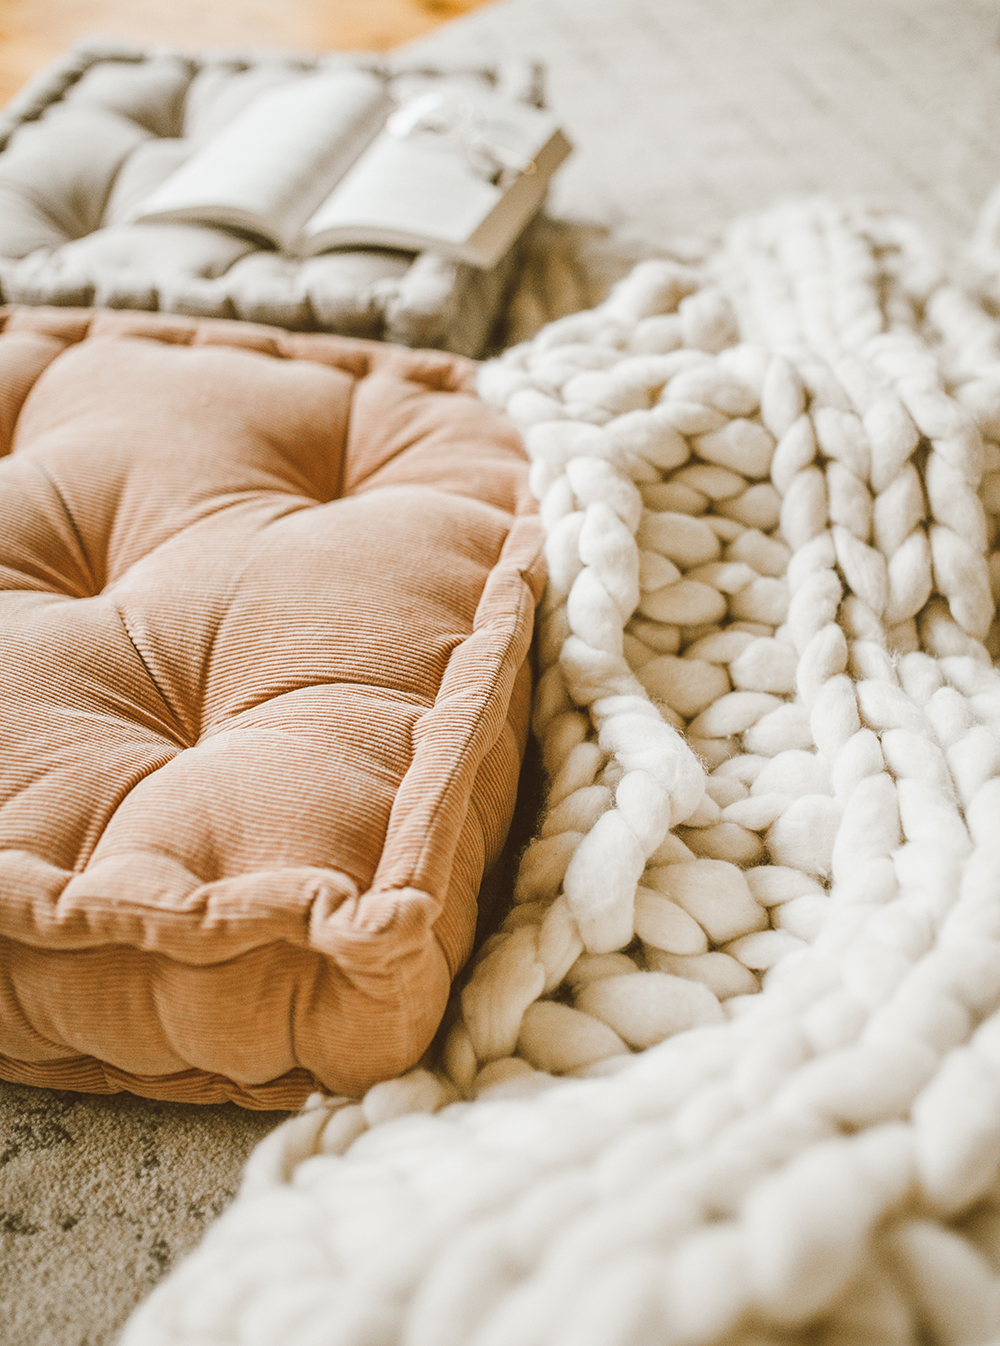 livvyland blog olivia watson austin texas lifestyle blog urban outfitters home decor bohemian cozy floor cushions blush rose 1 - A Few Cozy Decor Updates